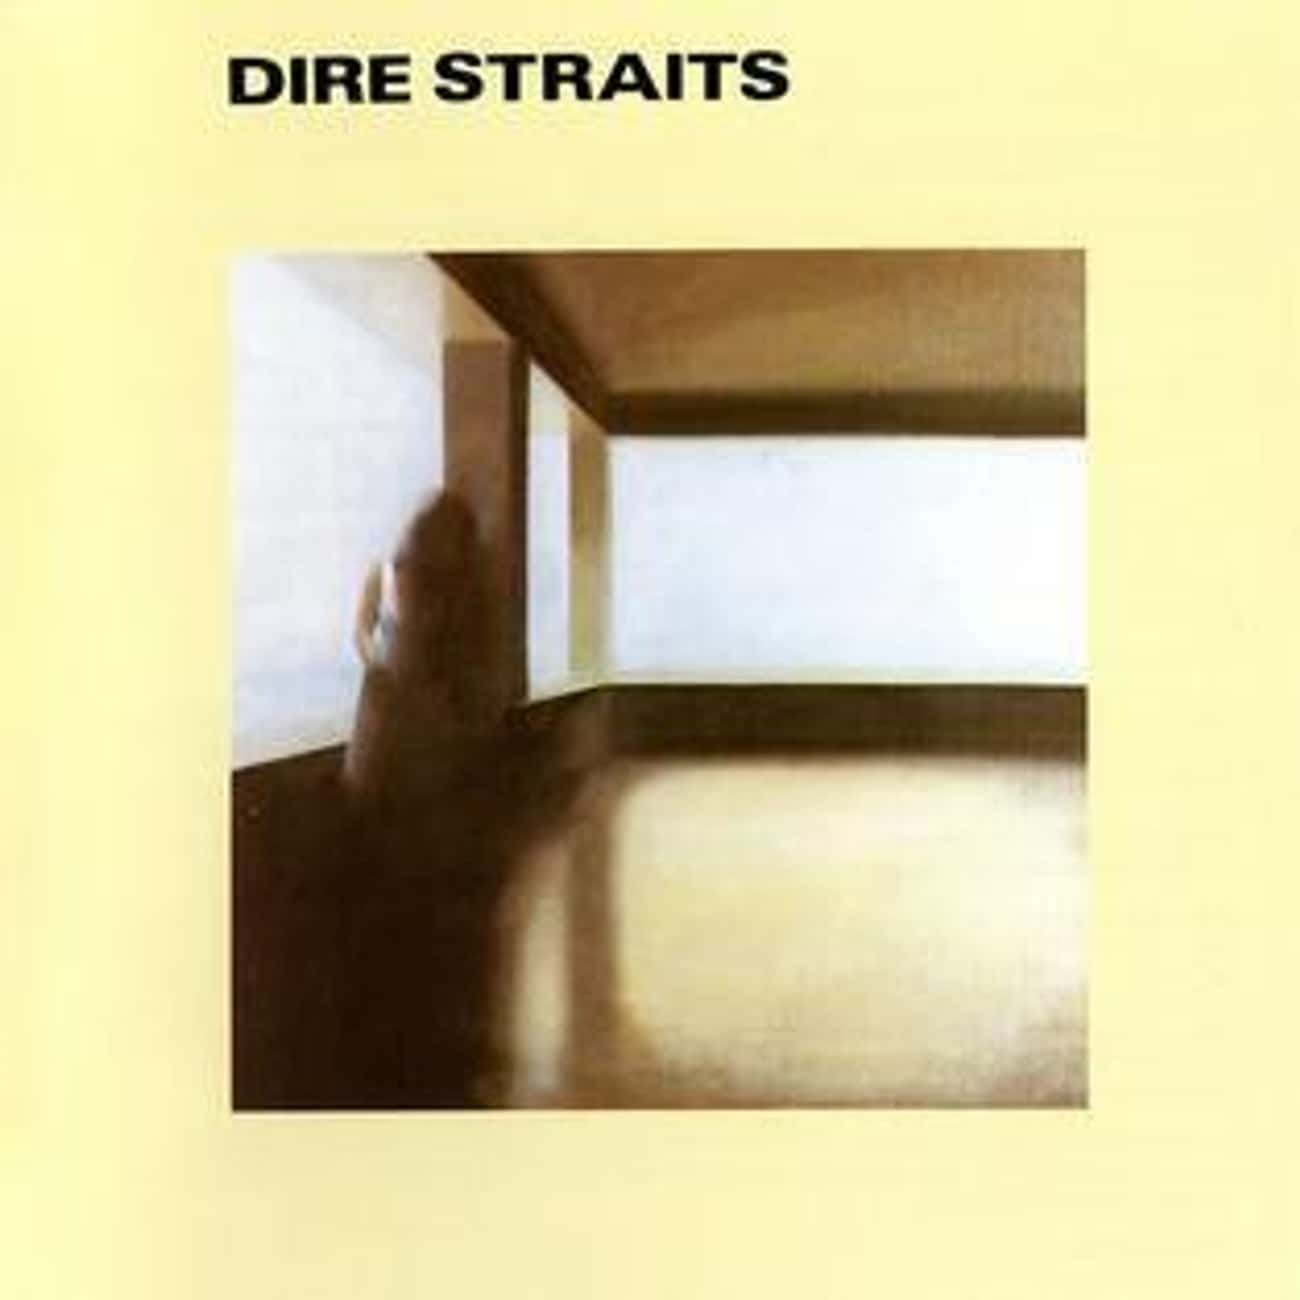 Dire Straits is listed (or ranked) 1 on the list The Best Dire Straits Albums of All Time